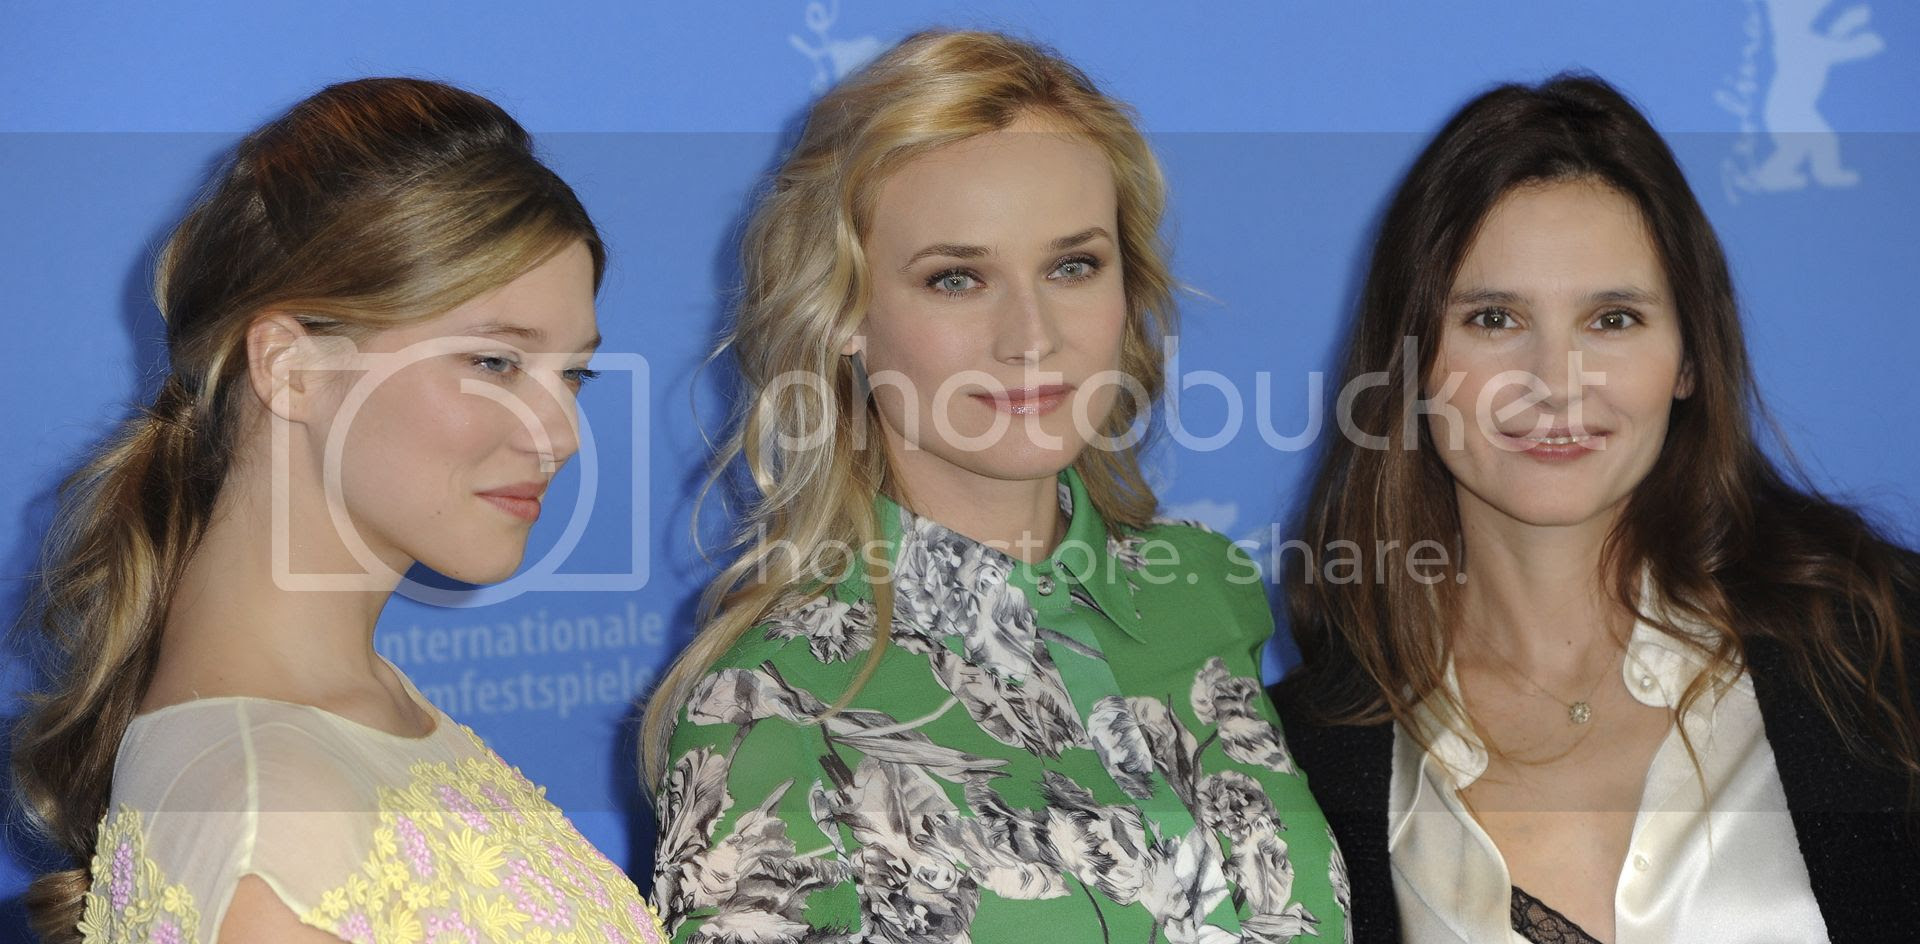 photo Diane_Kruger_62nd-BFF-Les-Adieux-PC_Vettri.Net-89.jpg